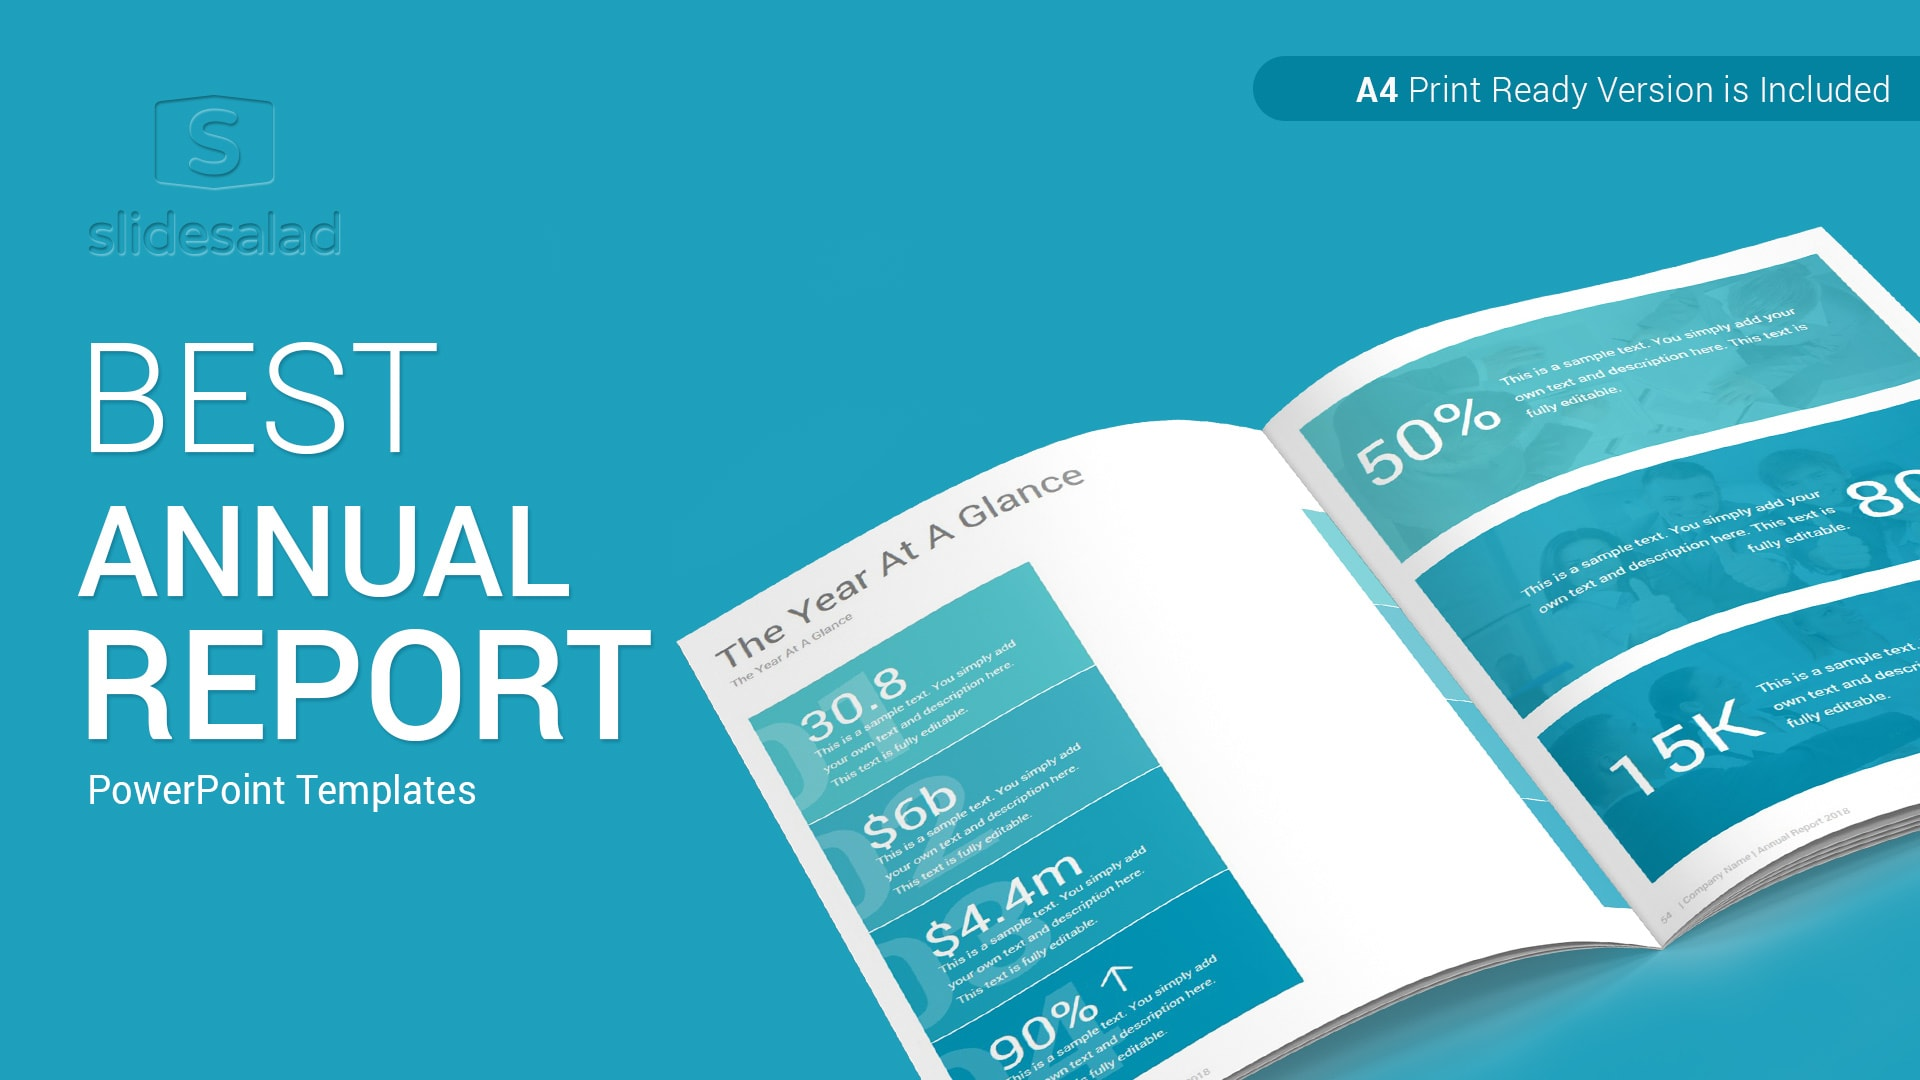 Annual Report PowerPoint Presentation Templates - Microsoft PowerPoint Template Designs